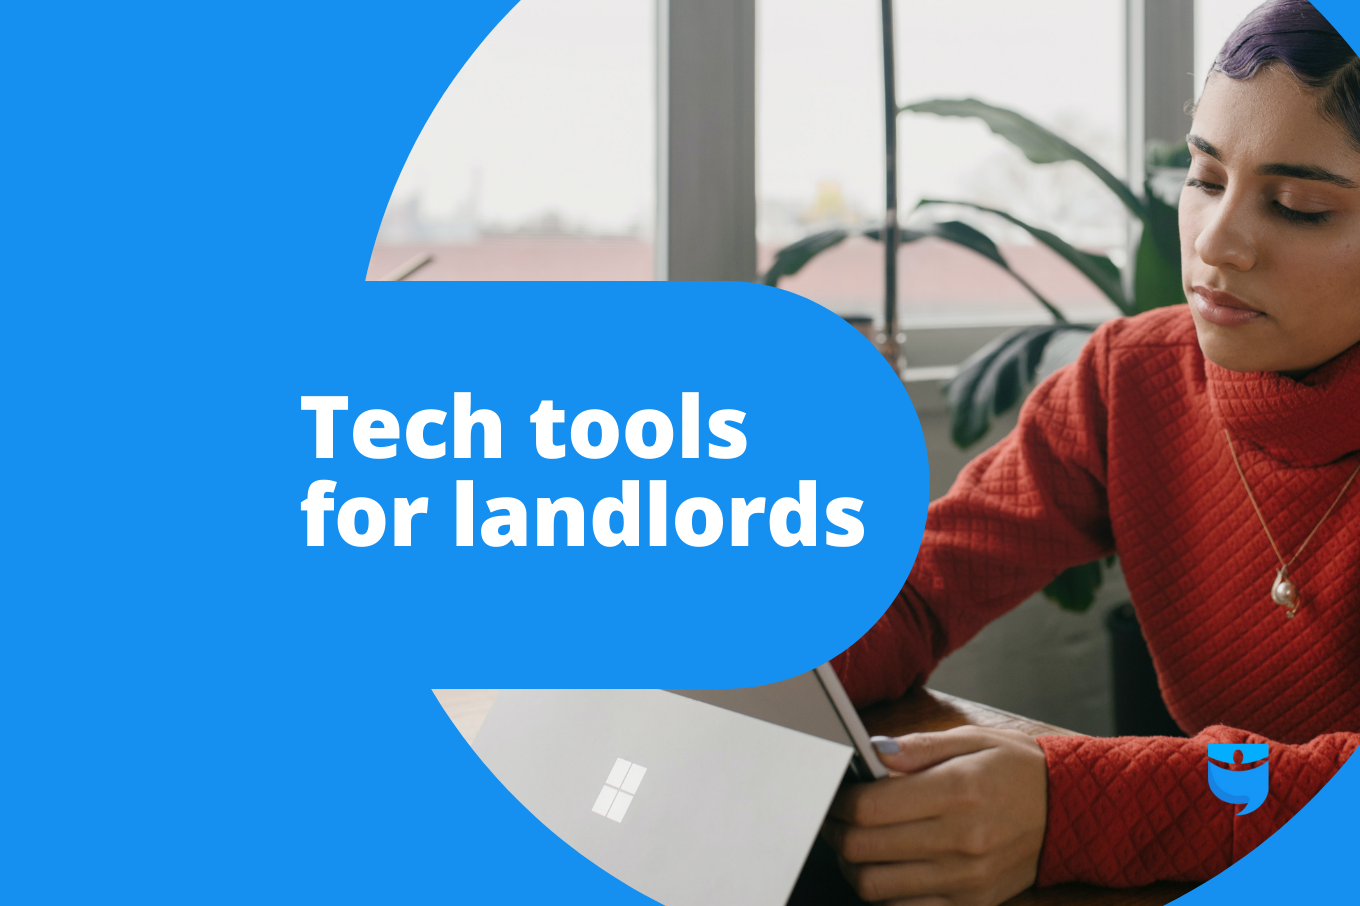 6 Tech Tools That Make a Landlord's Life Easier